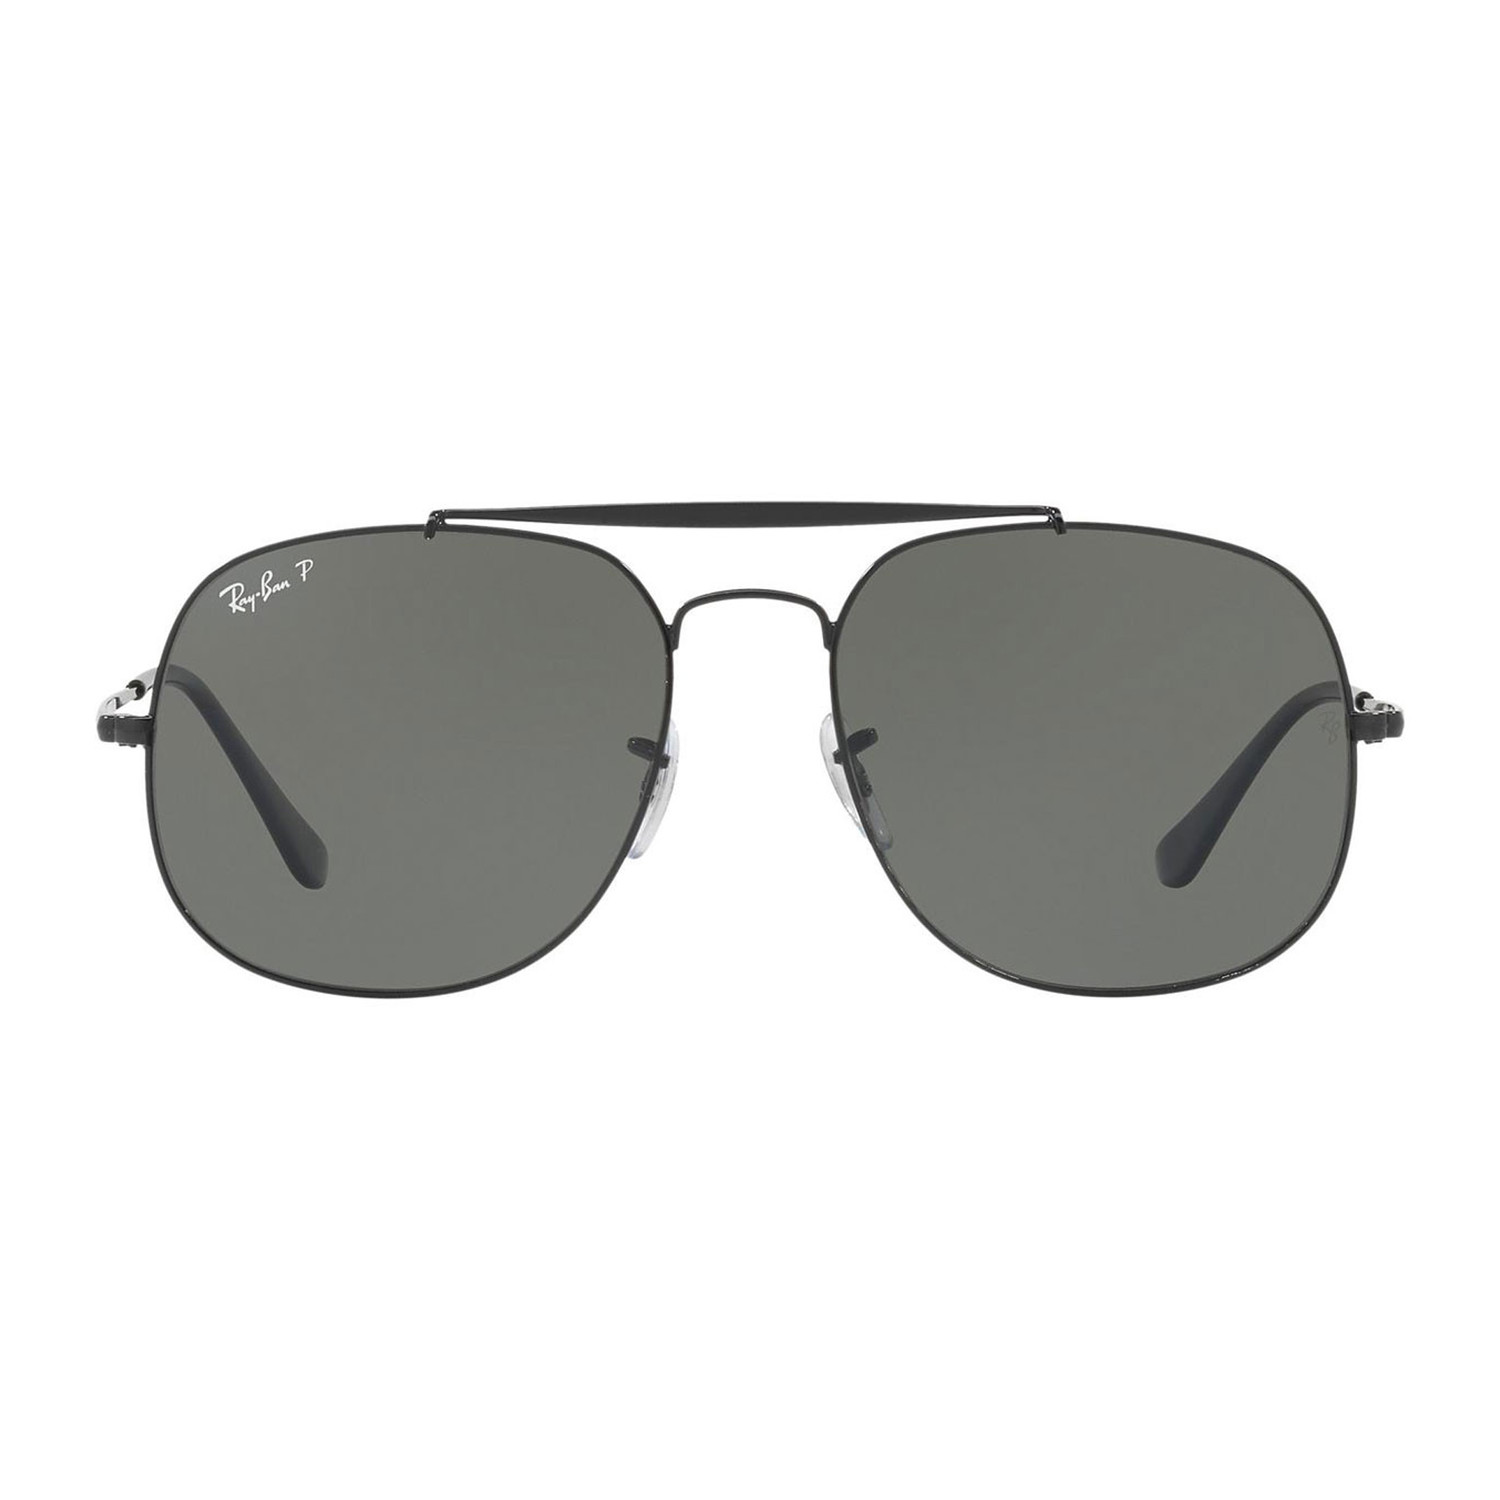 c1d8aa575b 19255fc63bb3f15dbd265edd1d12c1f8 medium · General Metal Aviator Sunglasses  ...